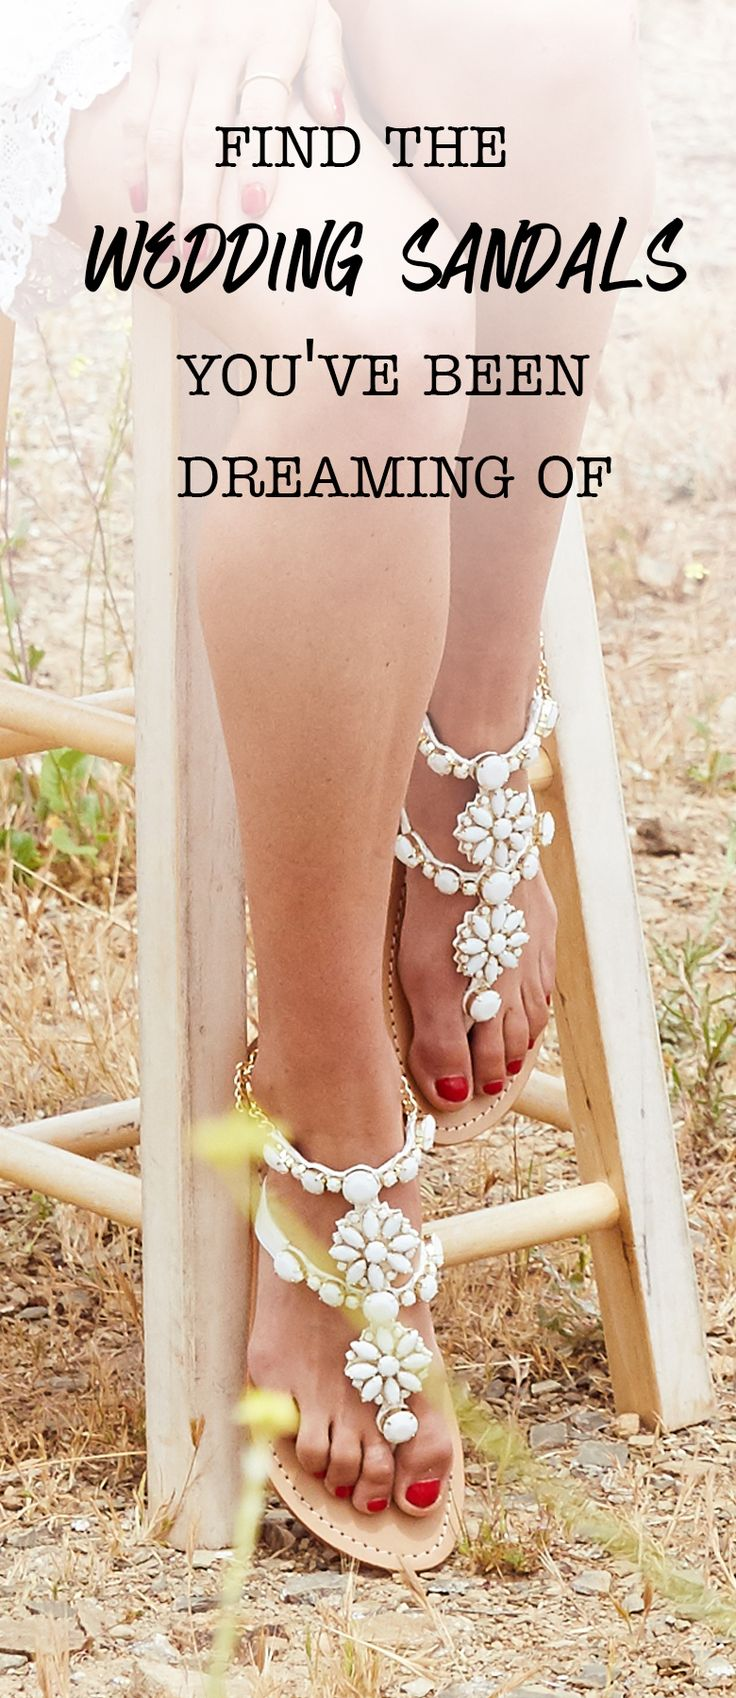 Stay classy and comfortable on your special day! #love #fashion #wedding #giftideas